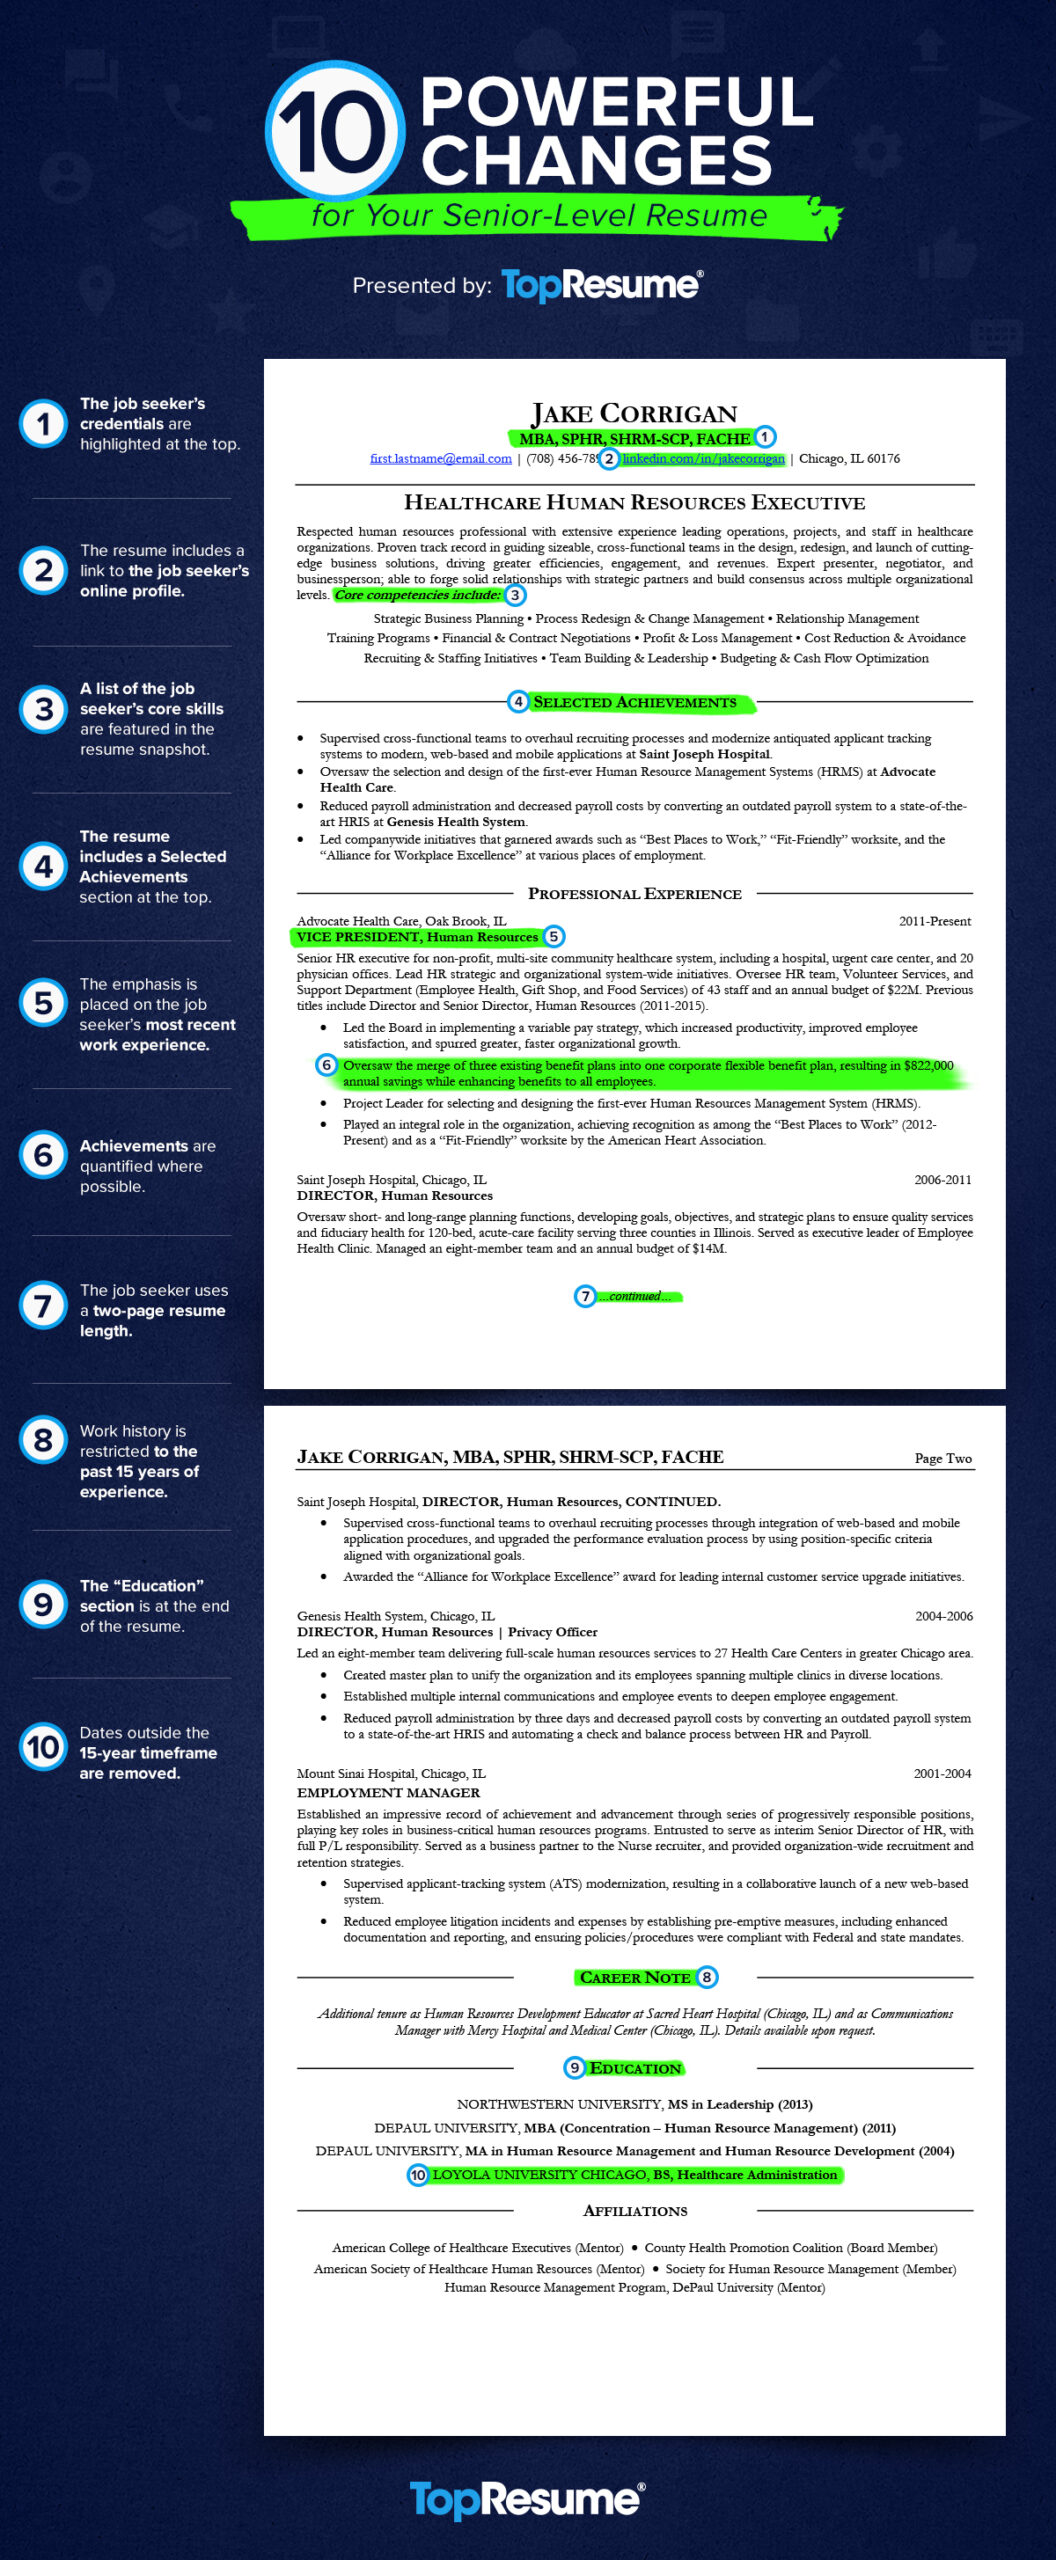 powerful changes for your executive level resume topresume creating that stands out ig v1 Resume Creating A Resume That Stands Out